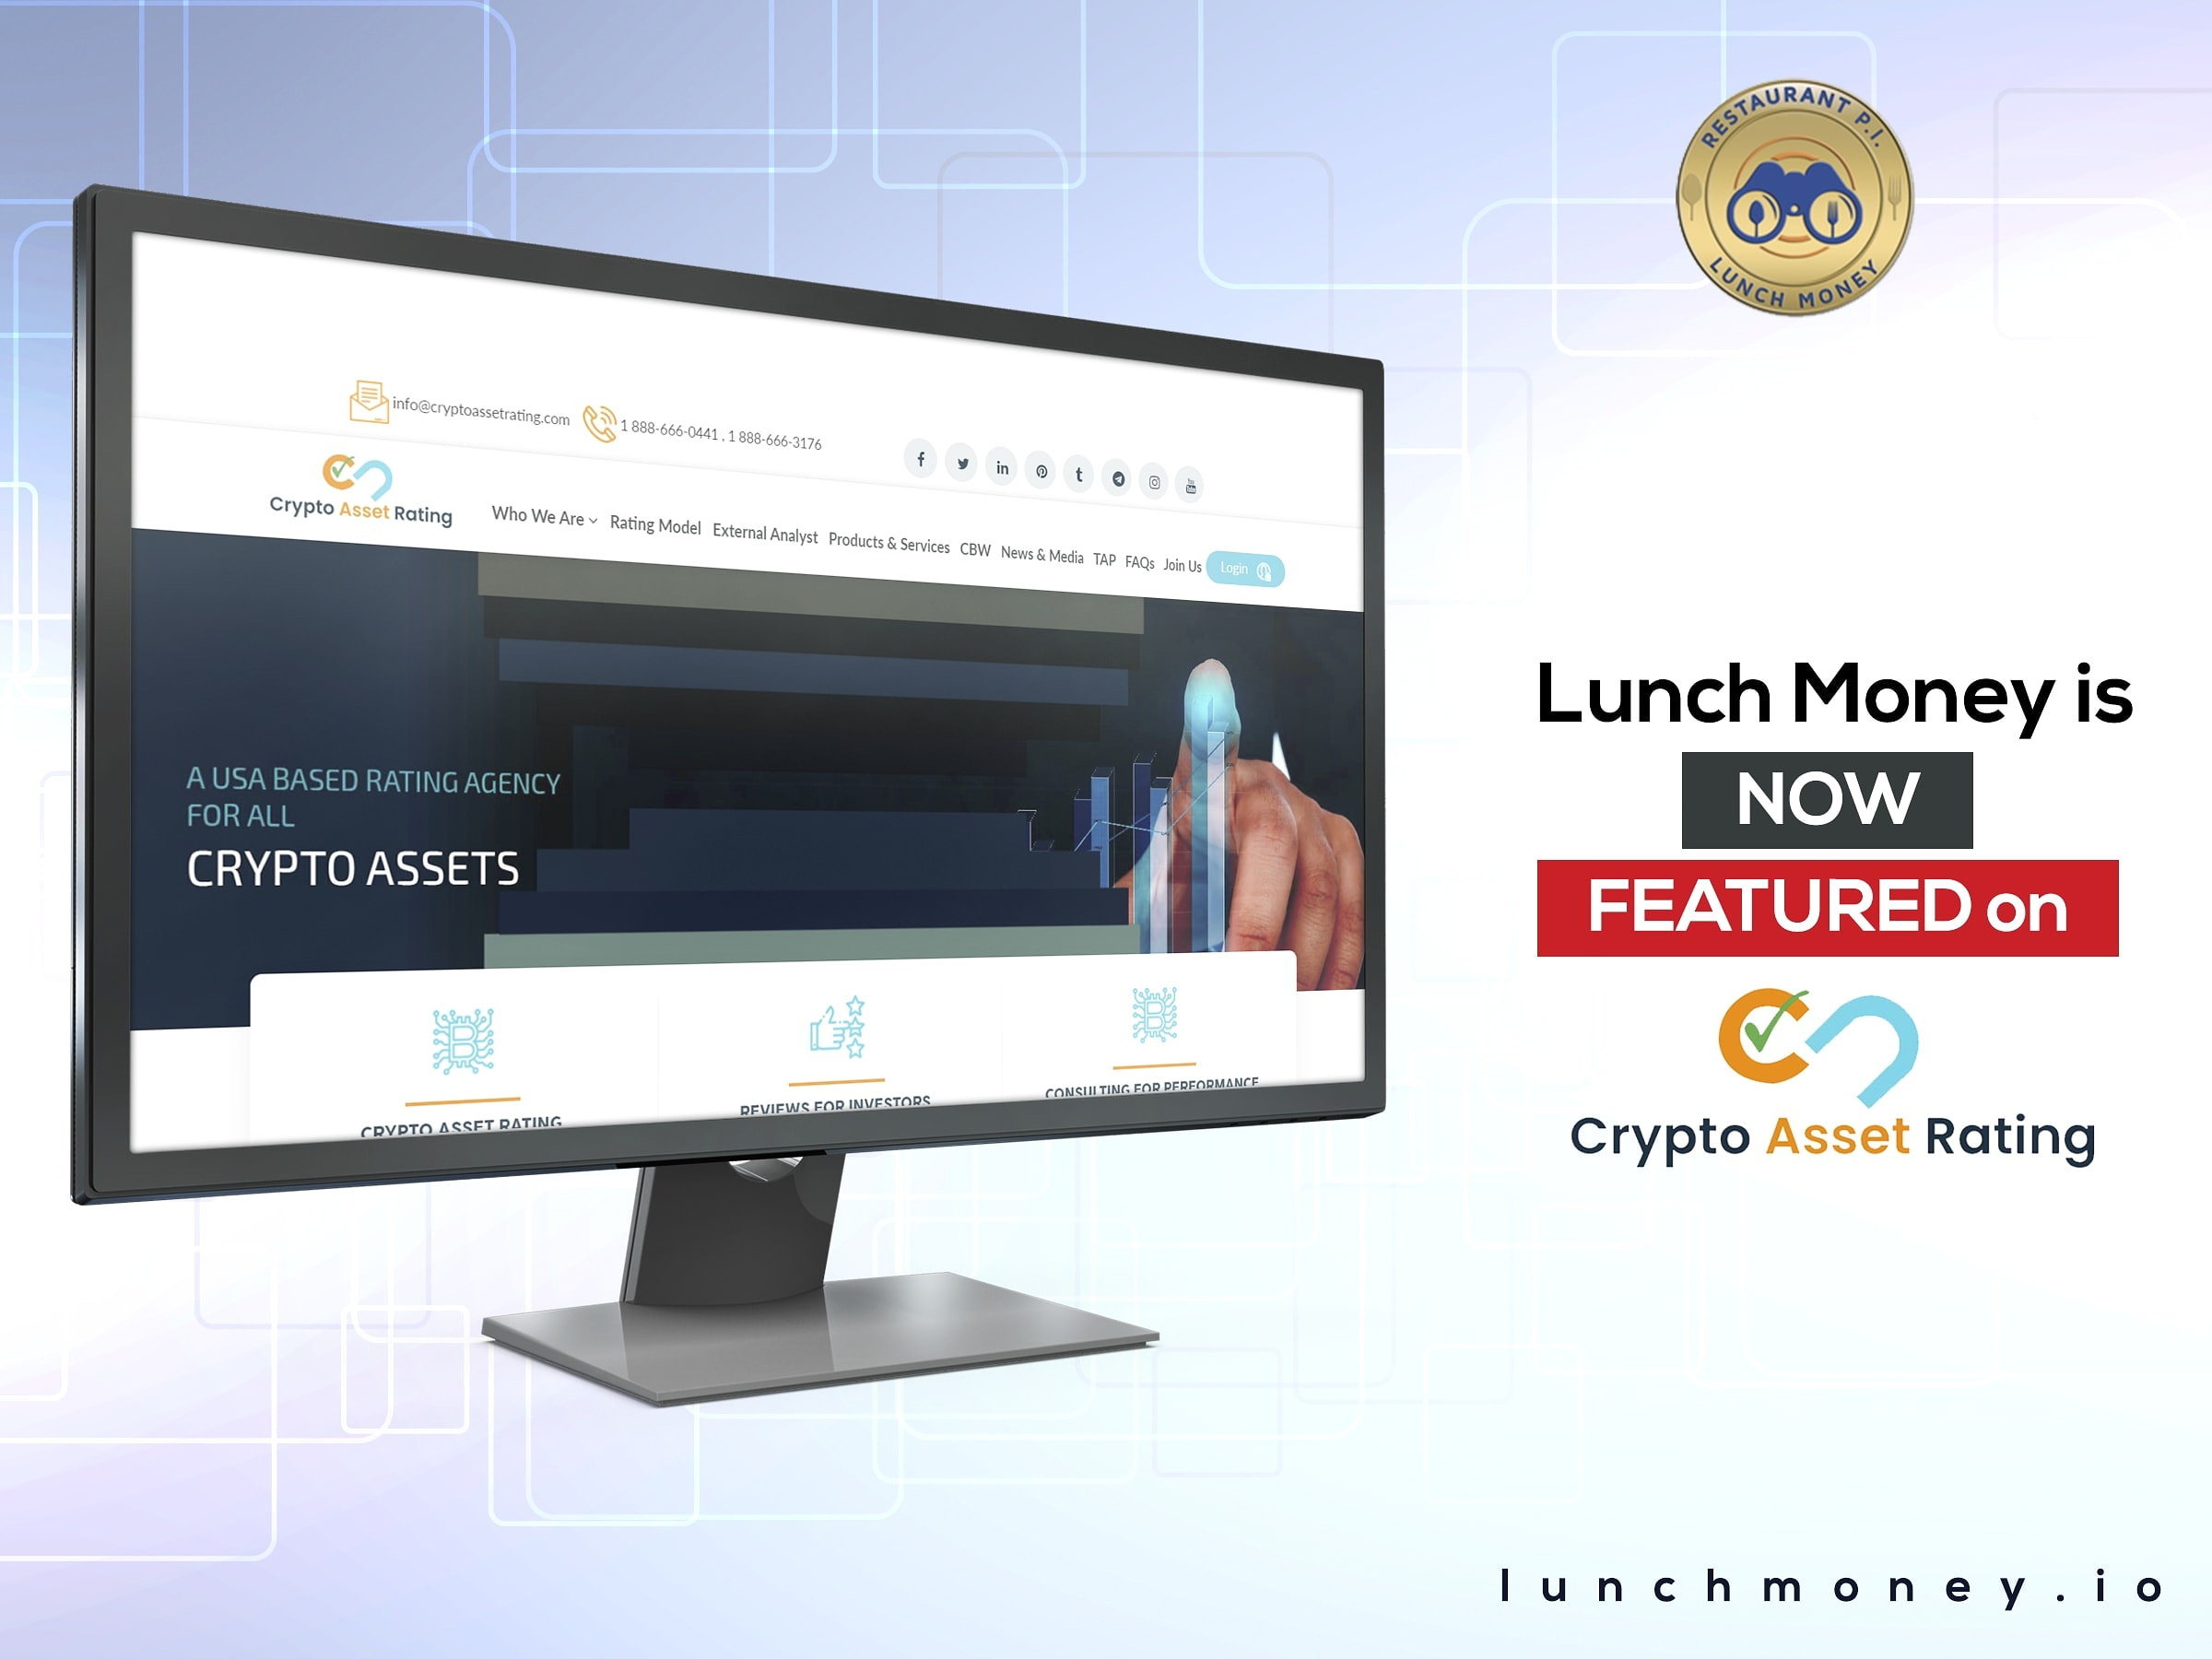 Lunch Money has been Rated and Reviewed by Crypto Asset Rating